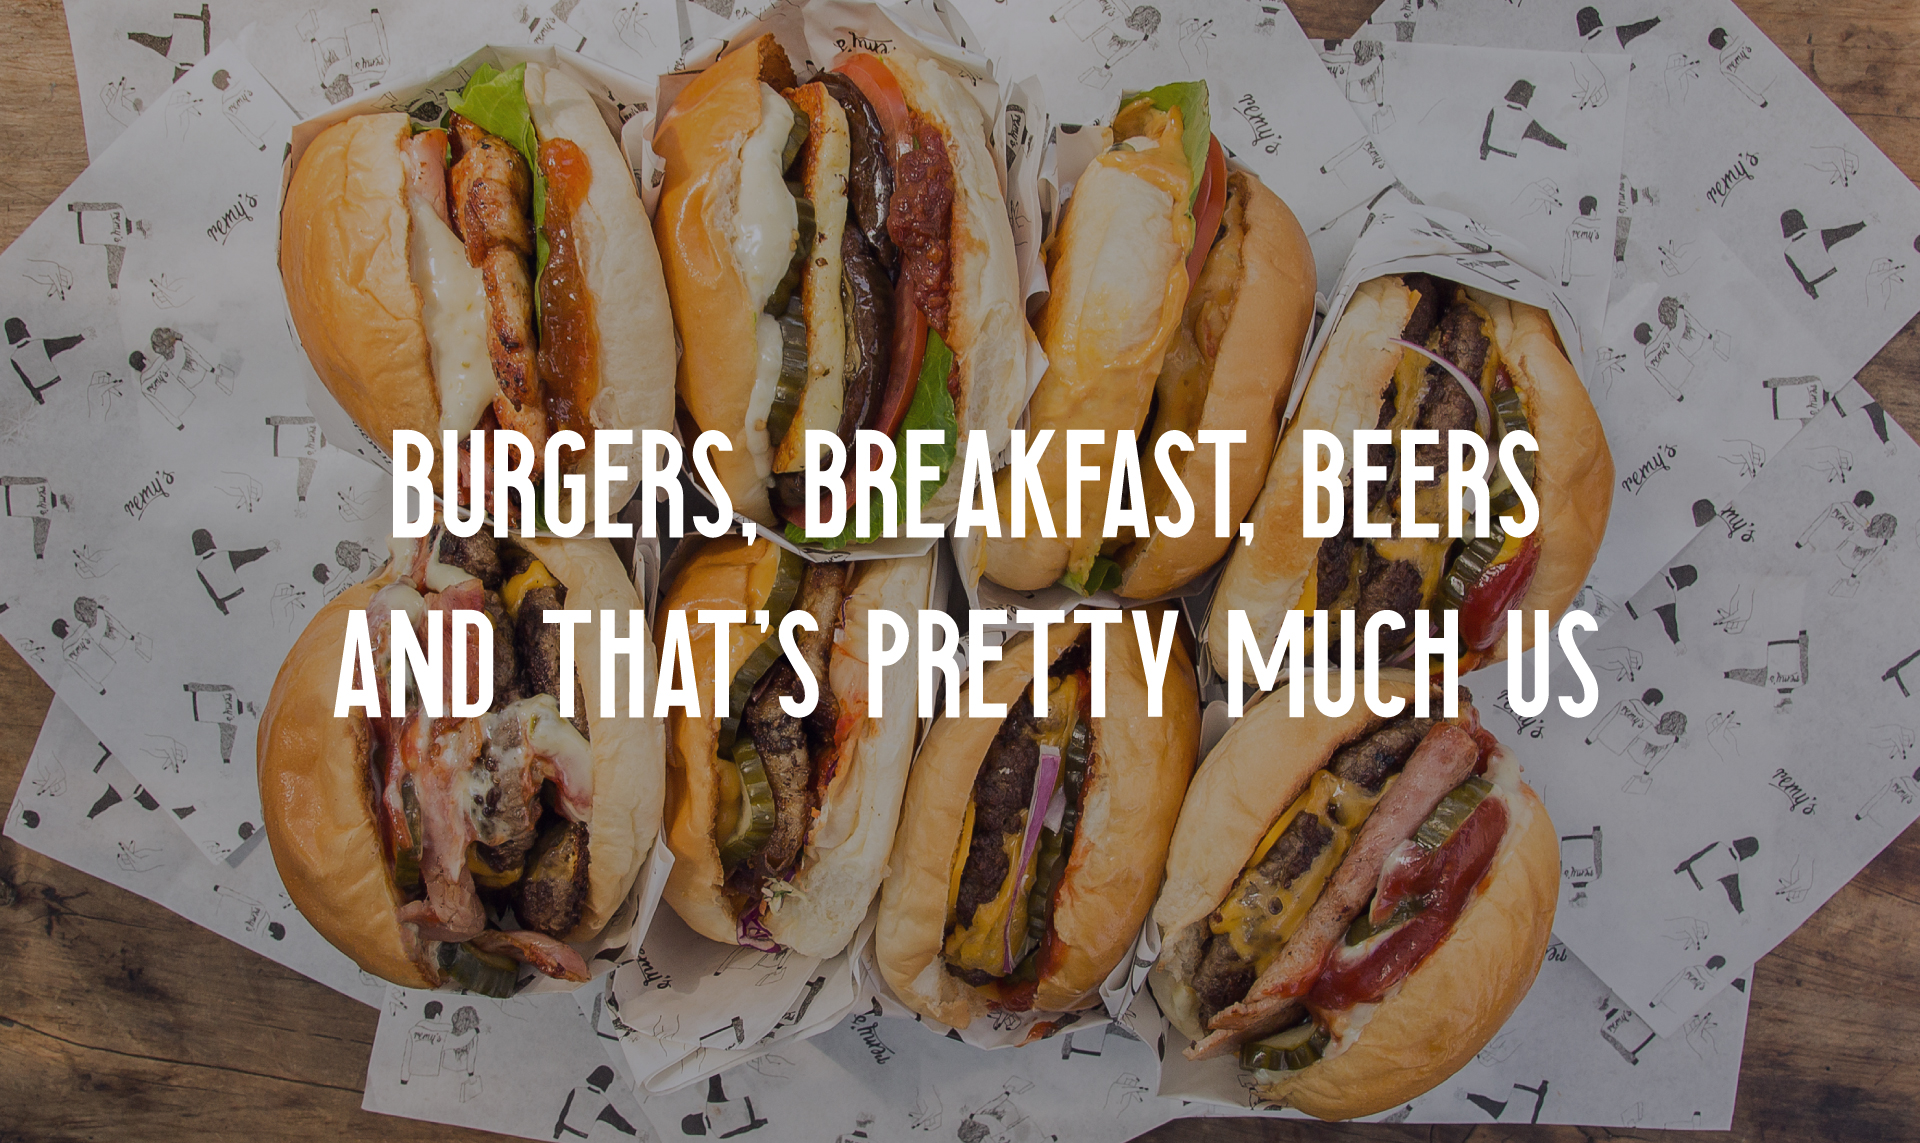 A range of meat & veggie burgers with a text overlay reading 'burgers, breakfast, beers and that's pretty much us'